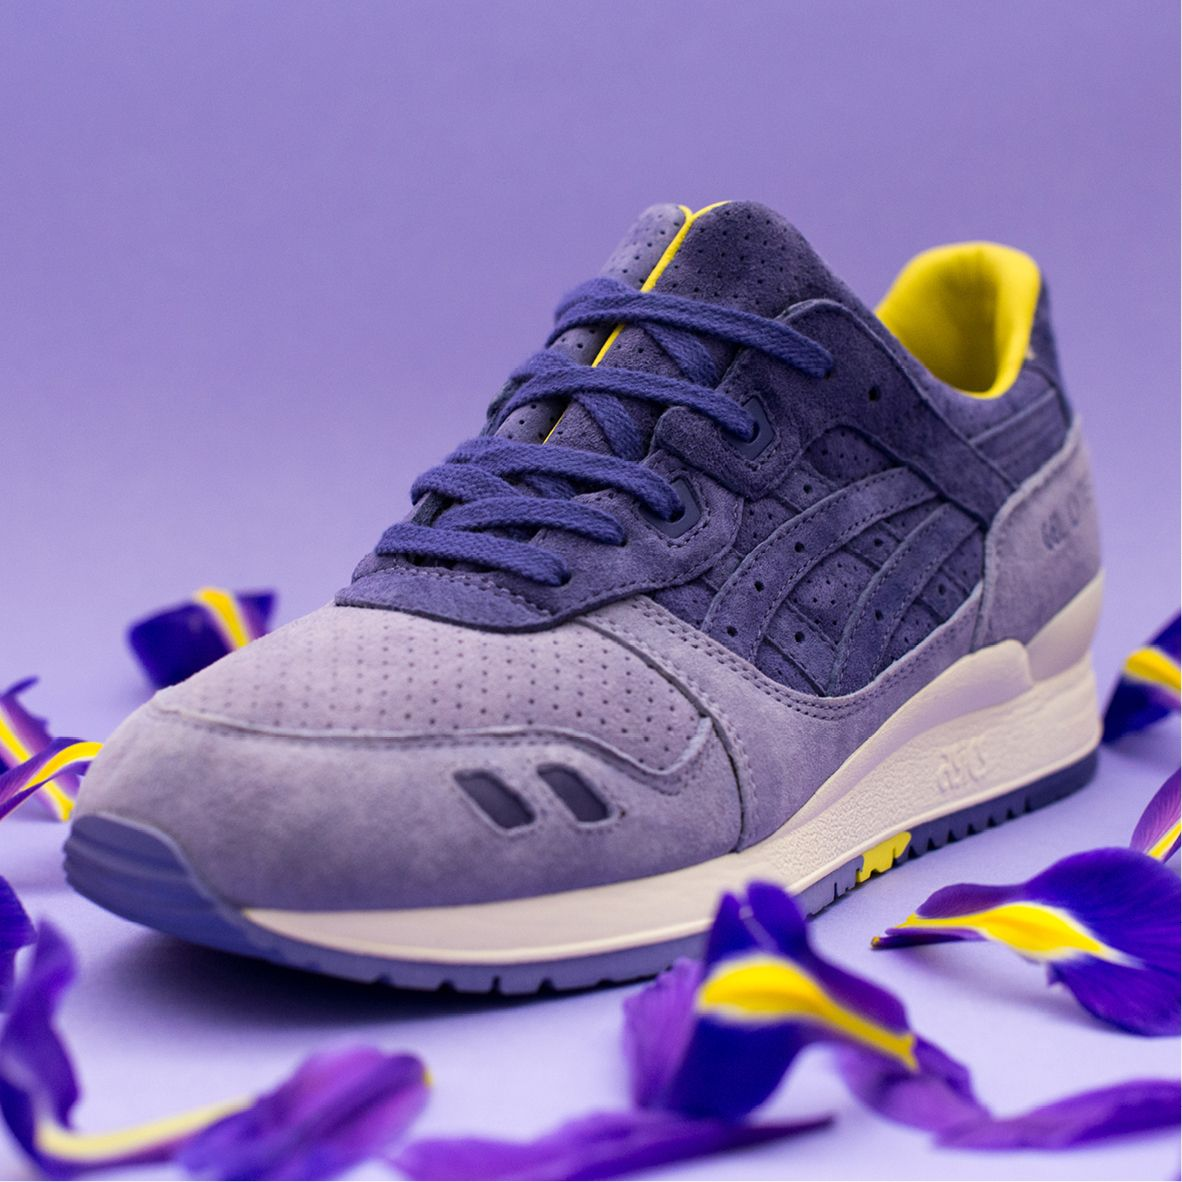 b1f86cfcbcb2 Asics Gel Lyte III Collaborations Are in Full Bloom